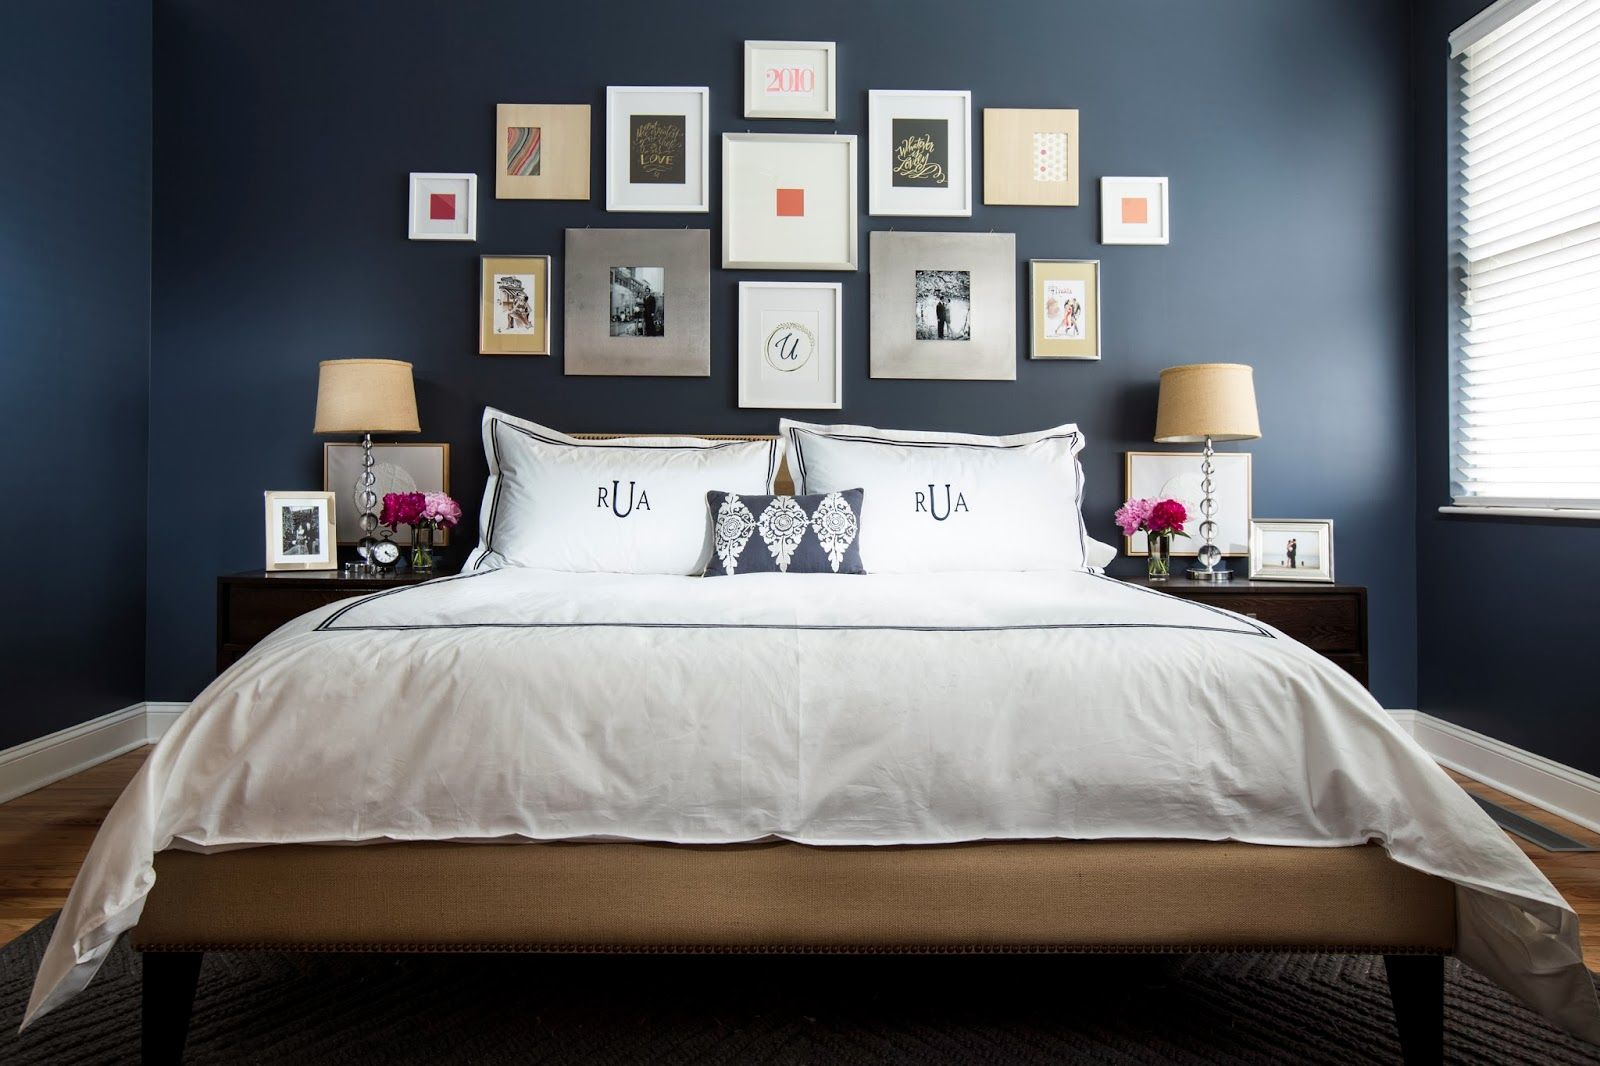 How To Decorate Bedroom Walls Navy And Dark Blue Bedroom Design Ideas And Pictures Home